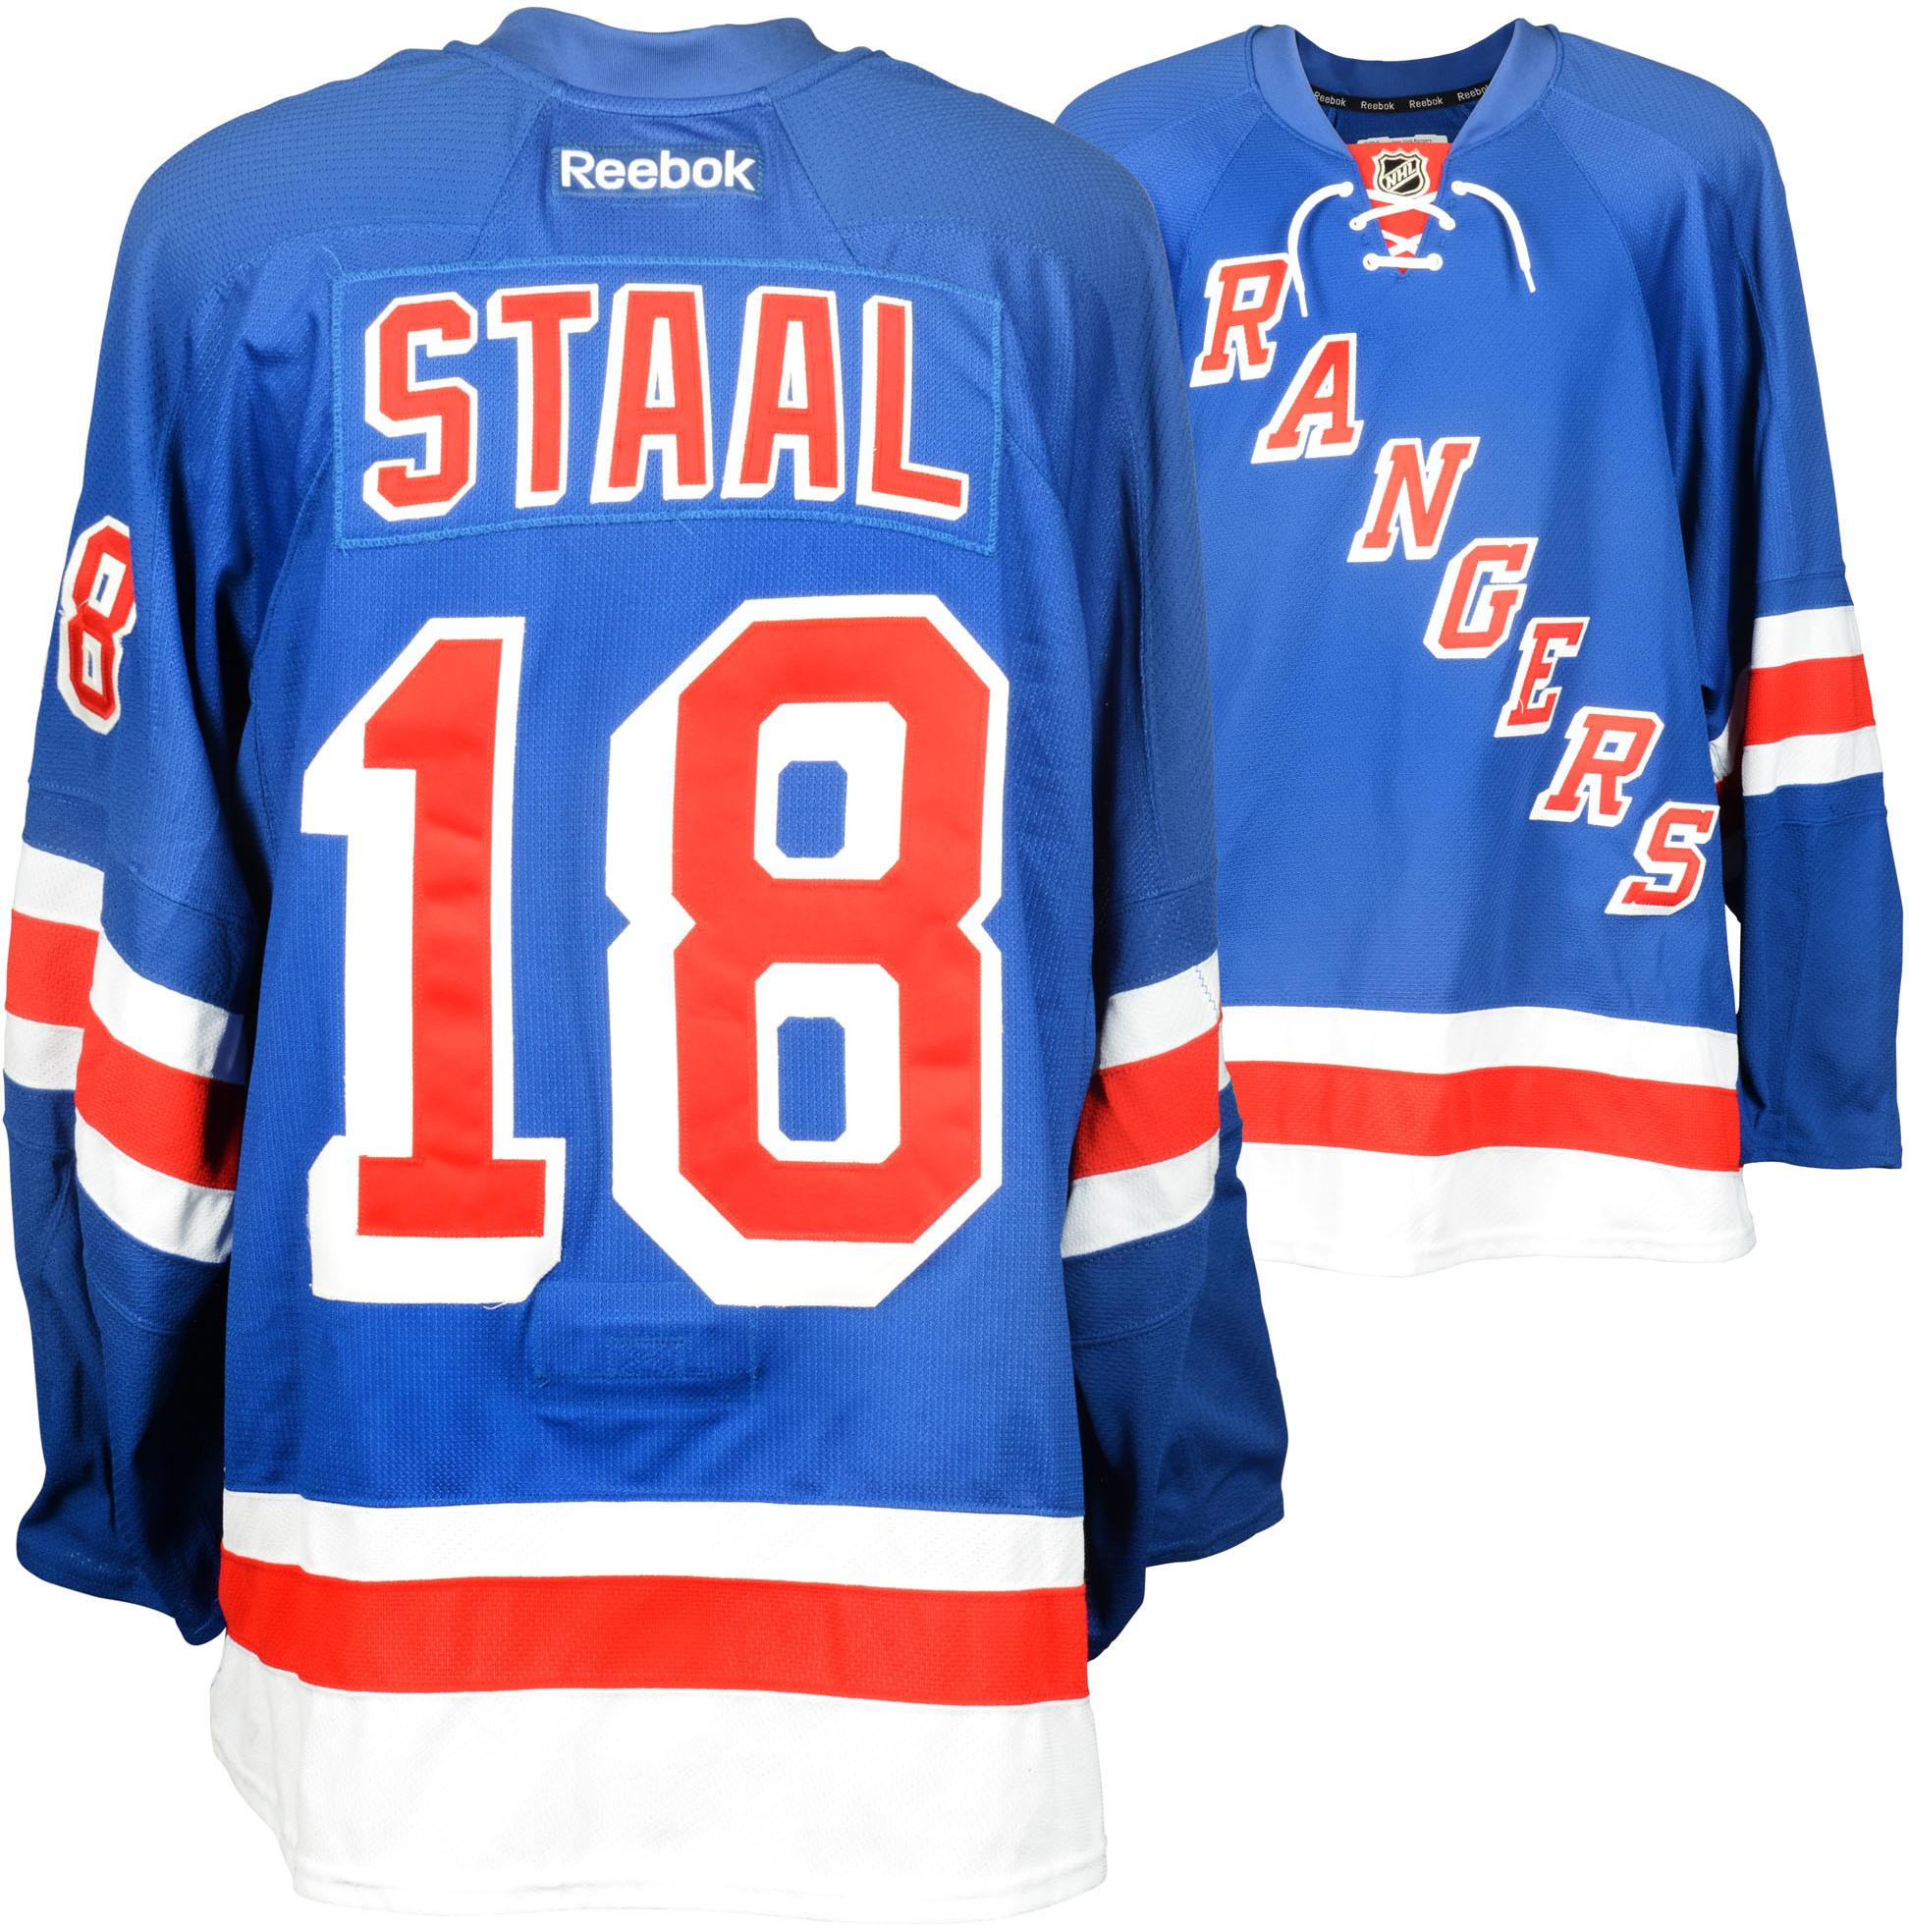 the latest 5ceaa bf5e9 Marc Staal New York Rangers Game-Used Rangers Blue Jersey From The  2014-2015 Season · The World Table Hockey Association, Inc.